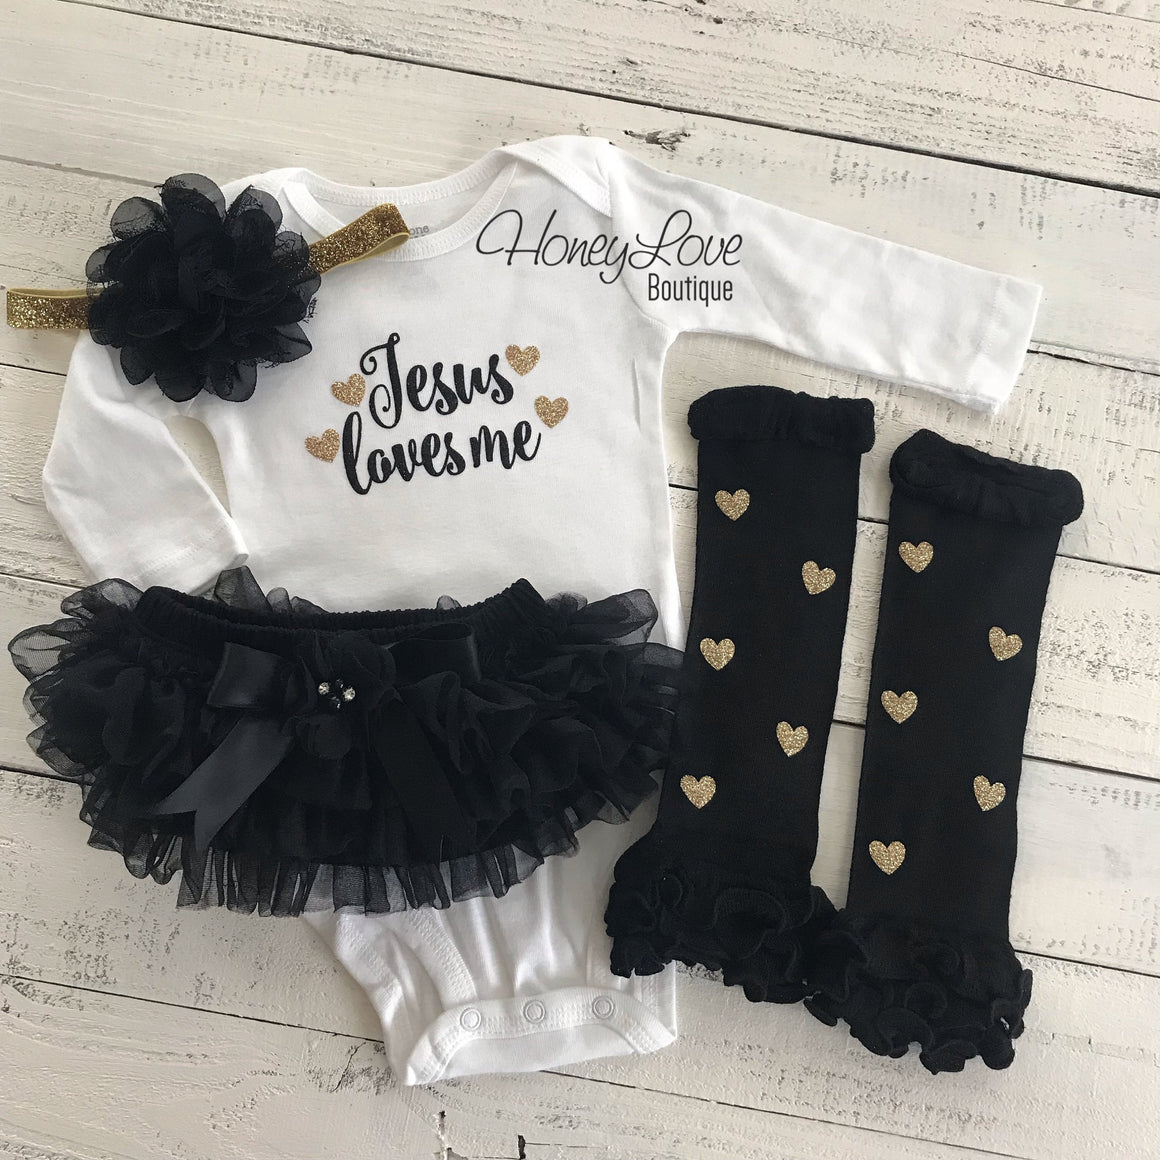 Jesus loves me Outfit Set - embellished tutu skirt bloomers - HoneyLoveBoutique